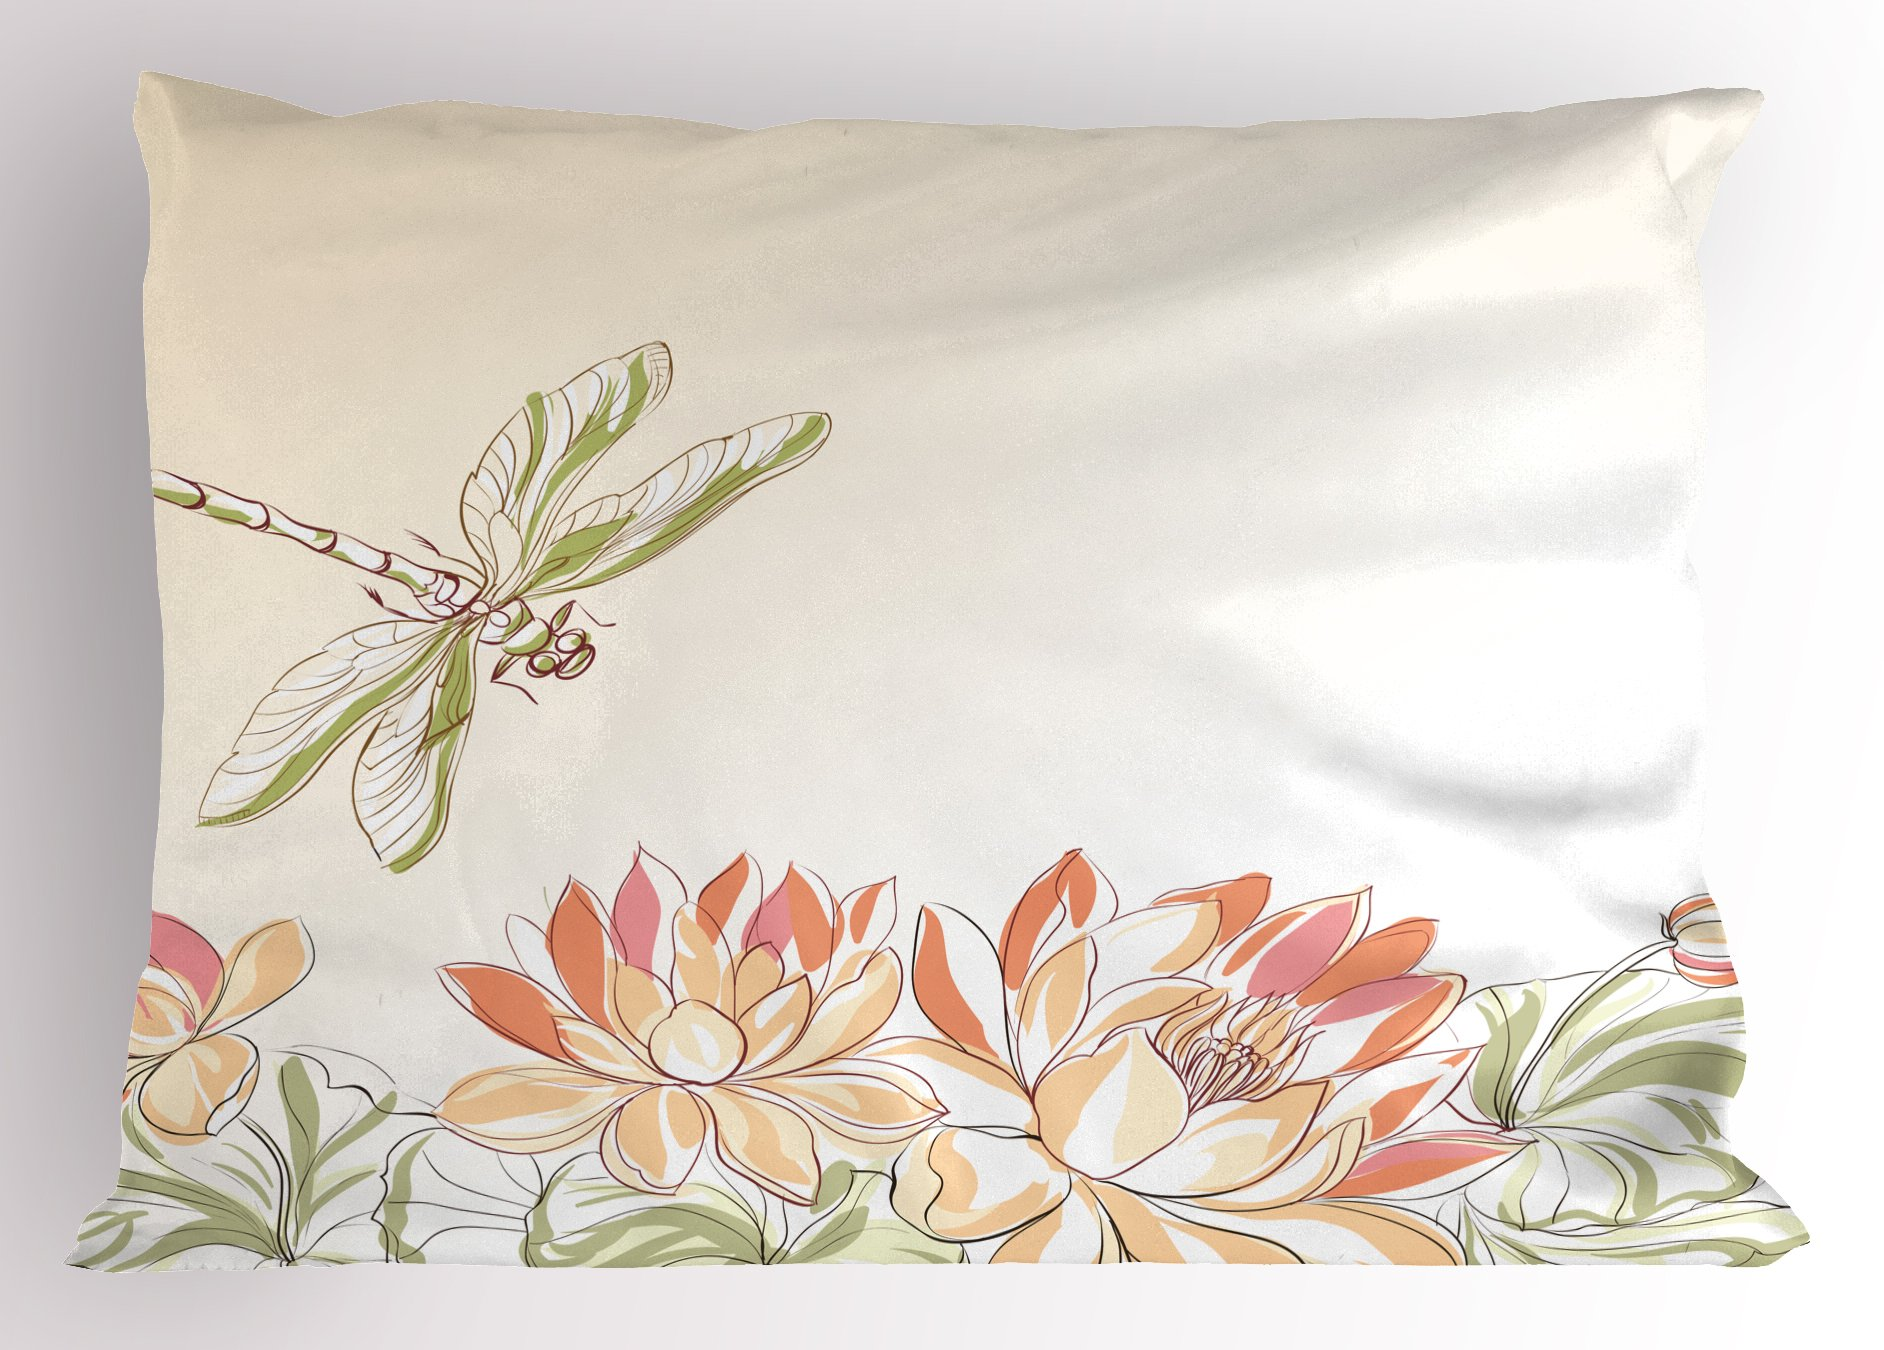 Ambesonne Dragonfly Pillow Sham, Lotus Flower Field Dragonfly Flying Oriental Blooms Artful Print, Decorative Standard King Size Printed Pillowcase, 36 X 20 inches, Cream Peach Coral